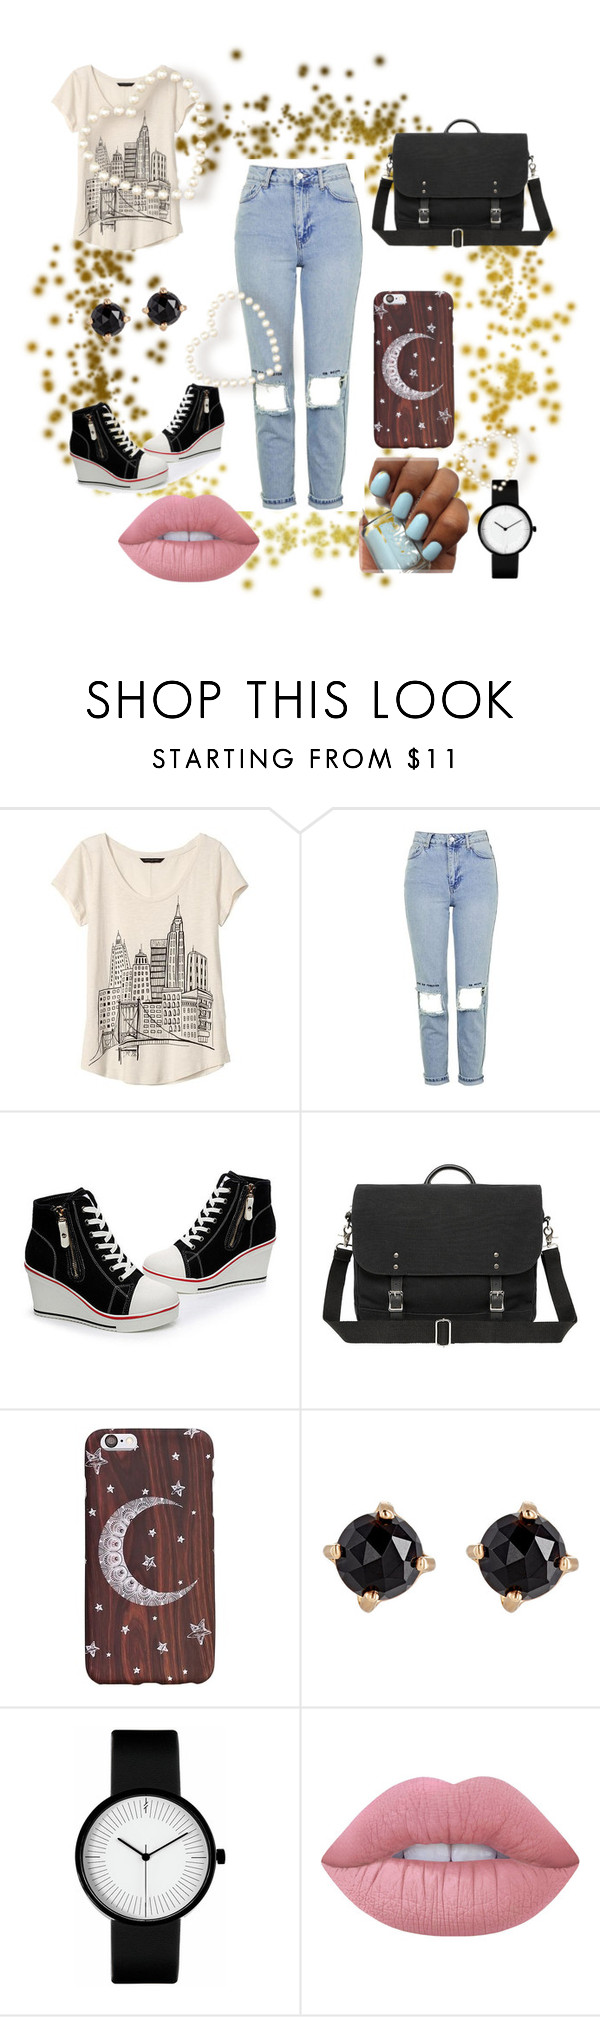 """Untitled #677"" by modapamy ❤ liked on Polyvore featuring Banana Republic, Topshop, Irene Neuwirth and Lime Crime"